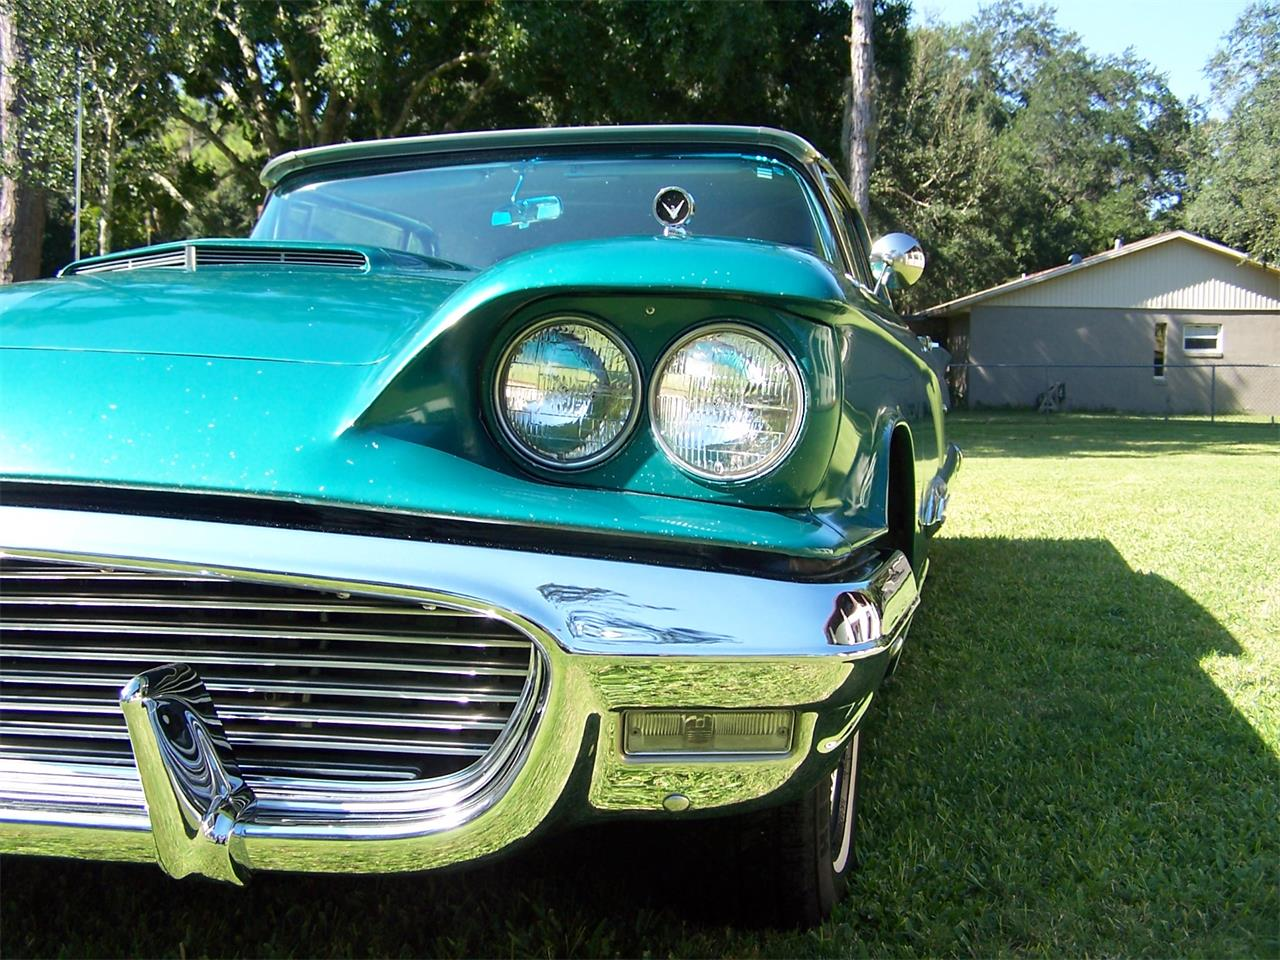 Large Picture of Classic 1959 Ford Thunderbird - $15,500.00 Offered by a Private Seller - LLRY